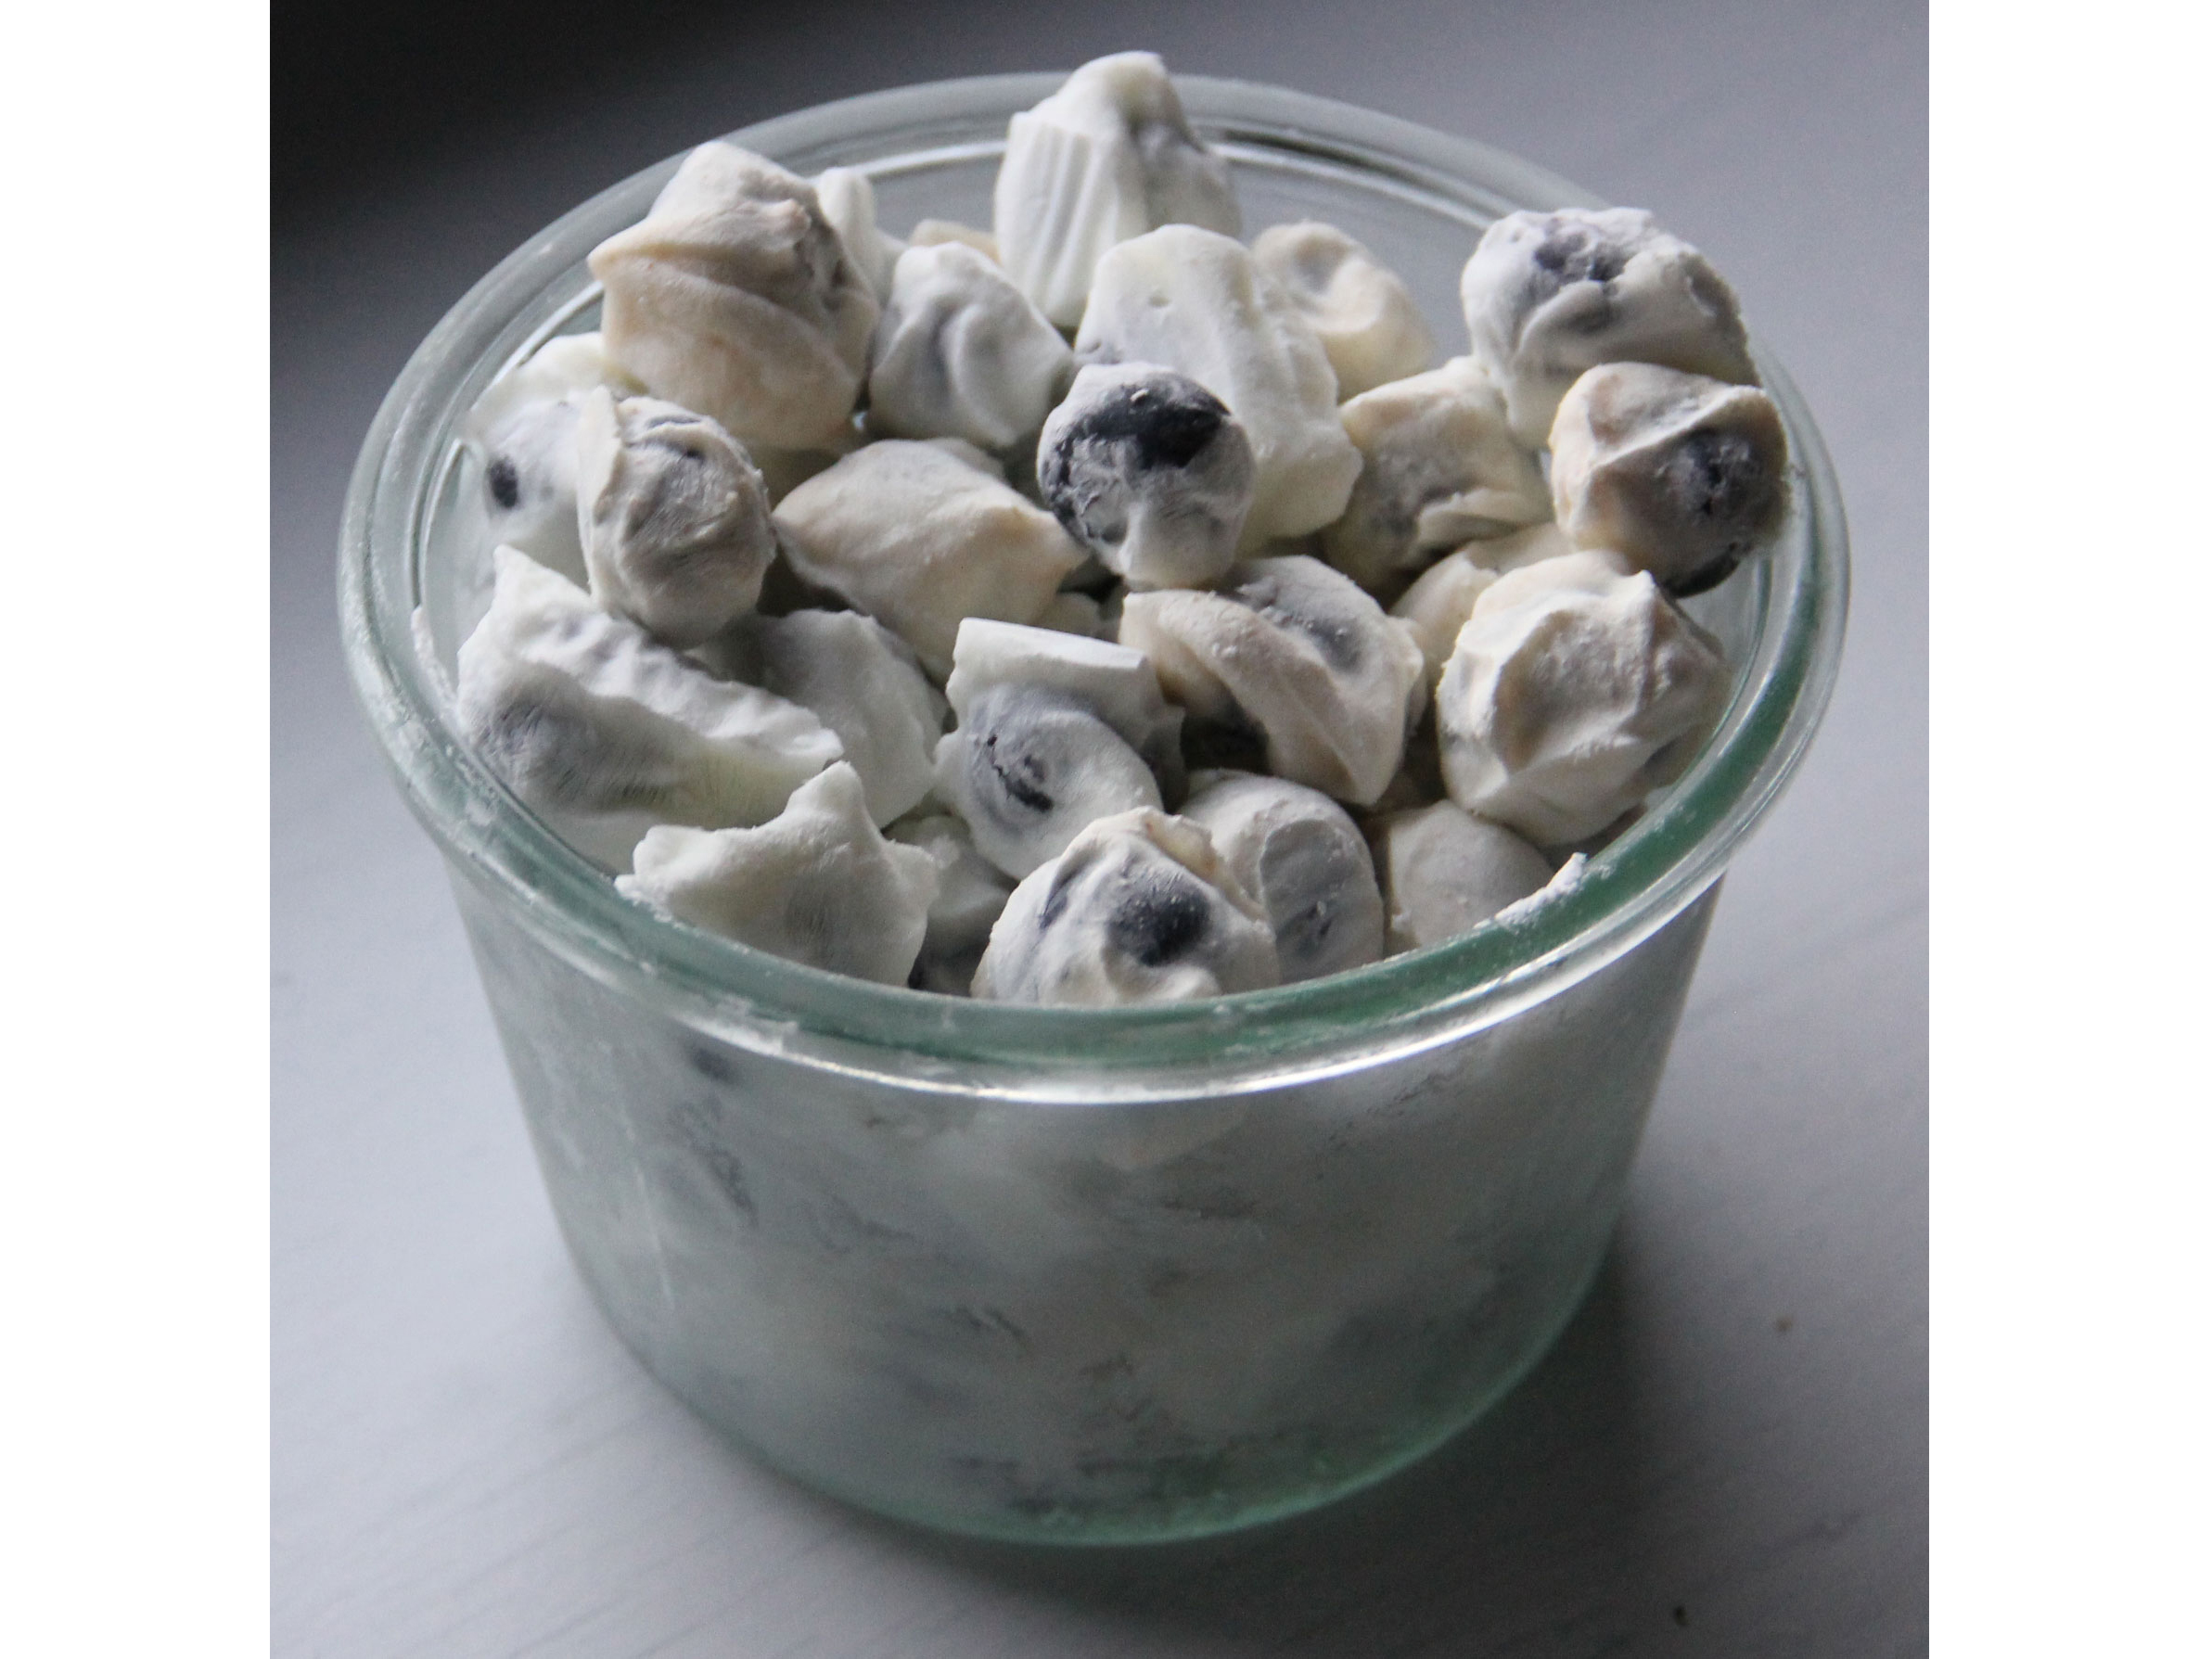 frozen yogurt blueberry bites image